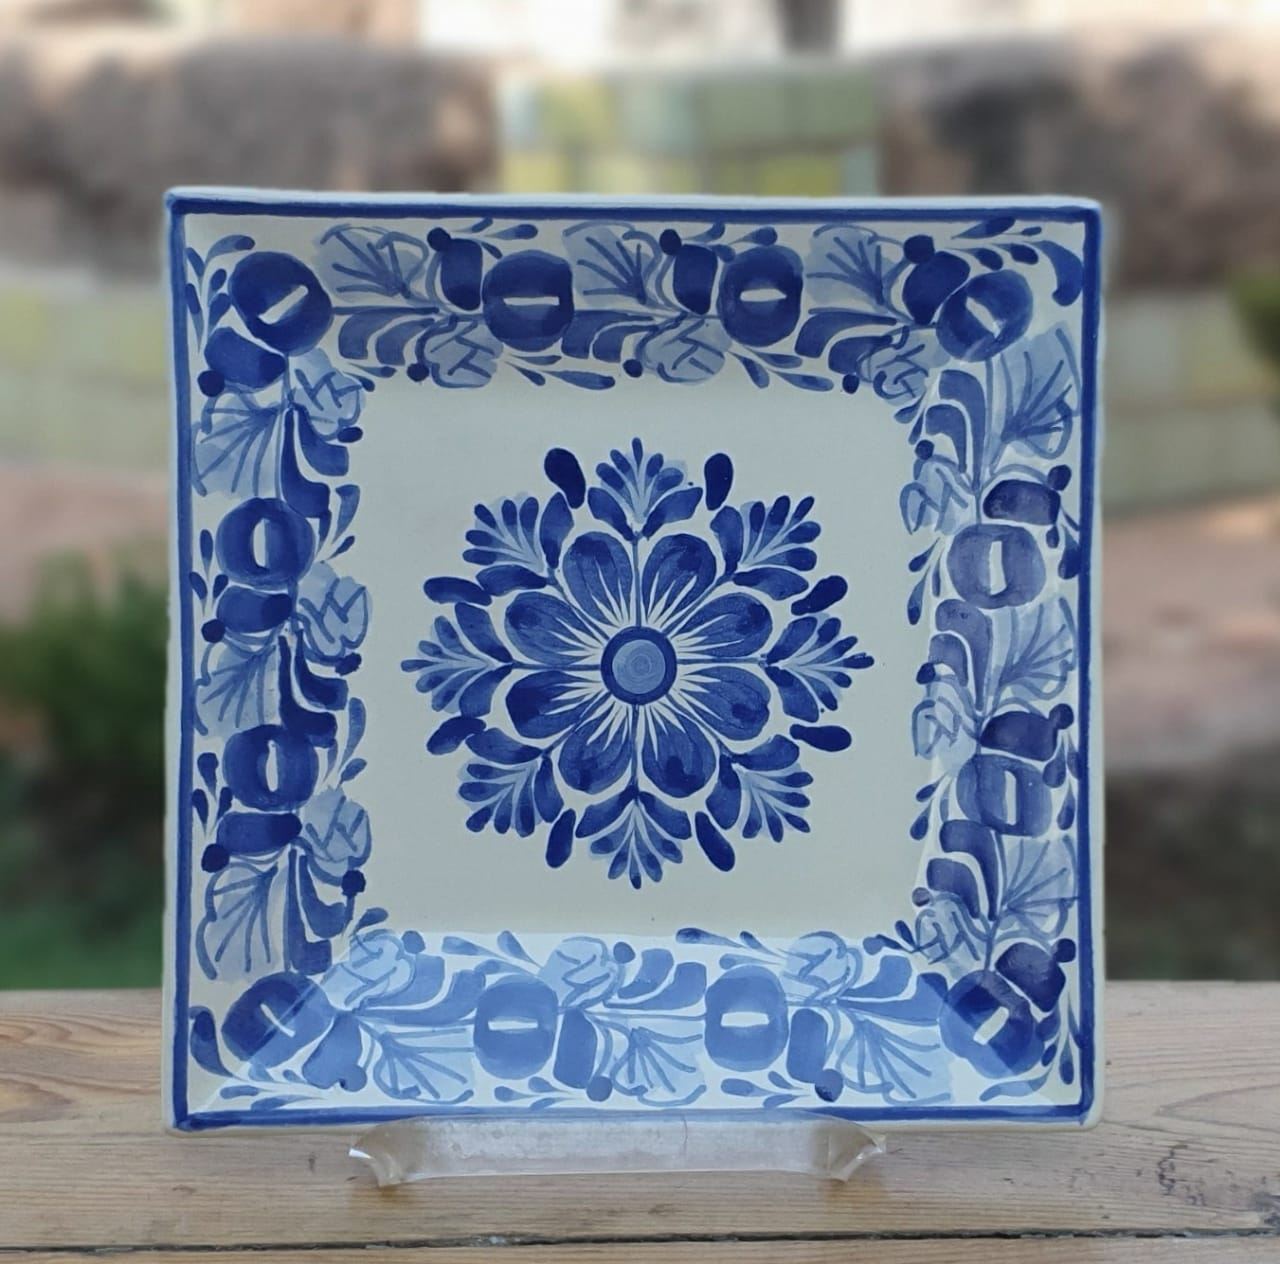 Flower Square Plate Blue and White